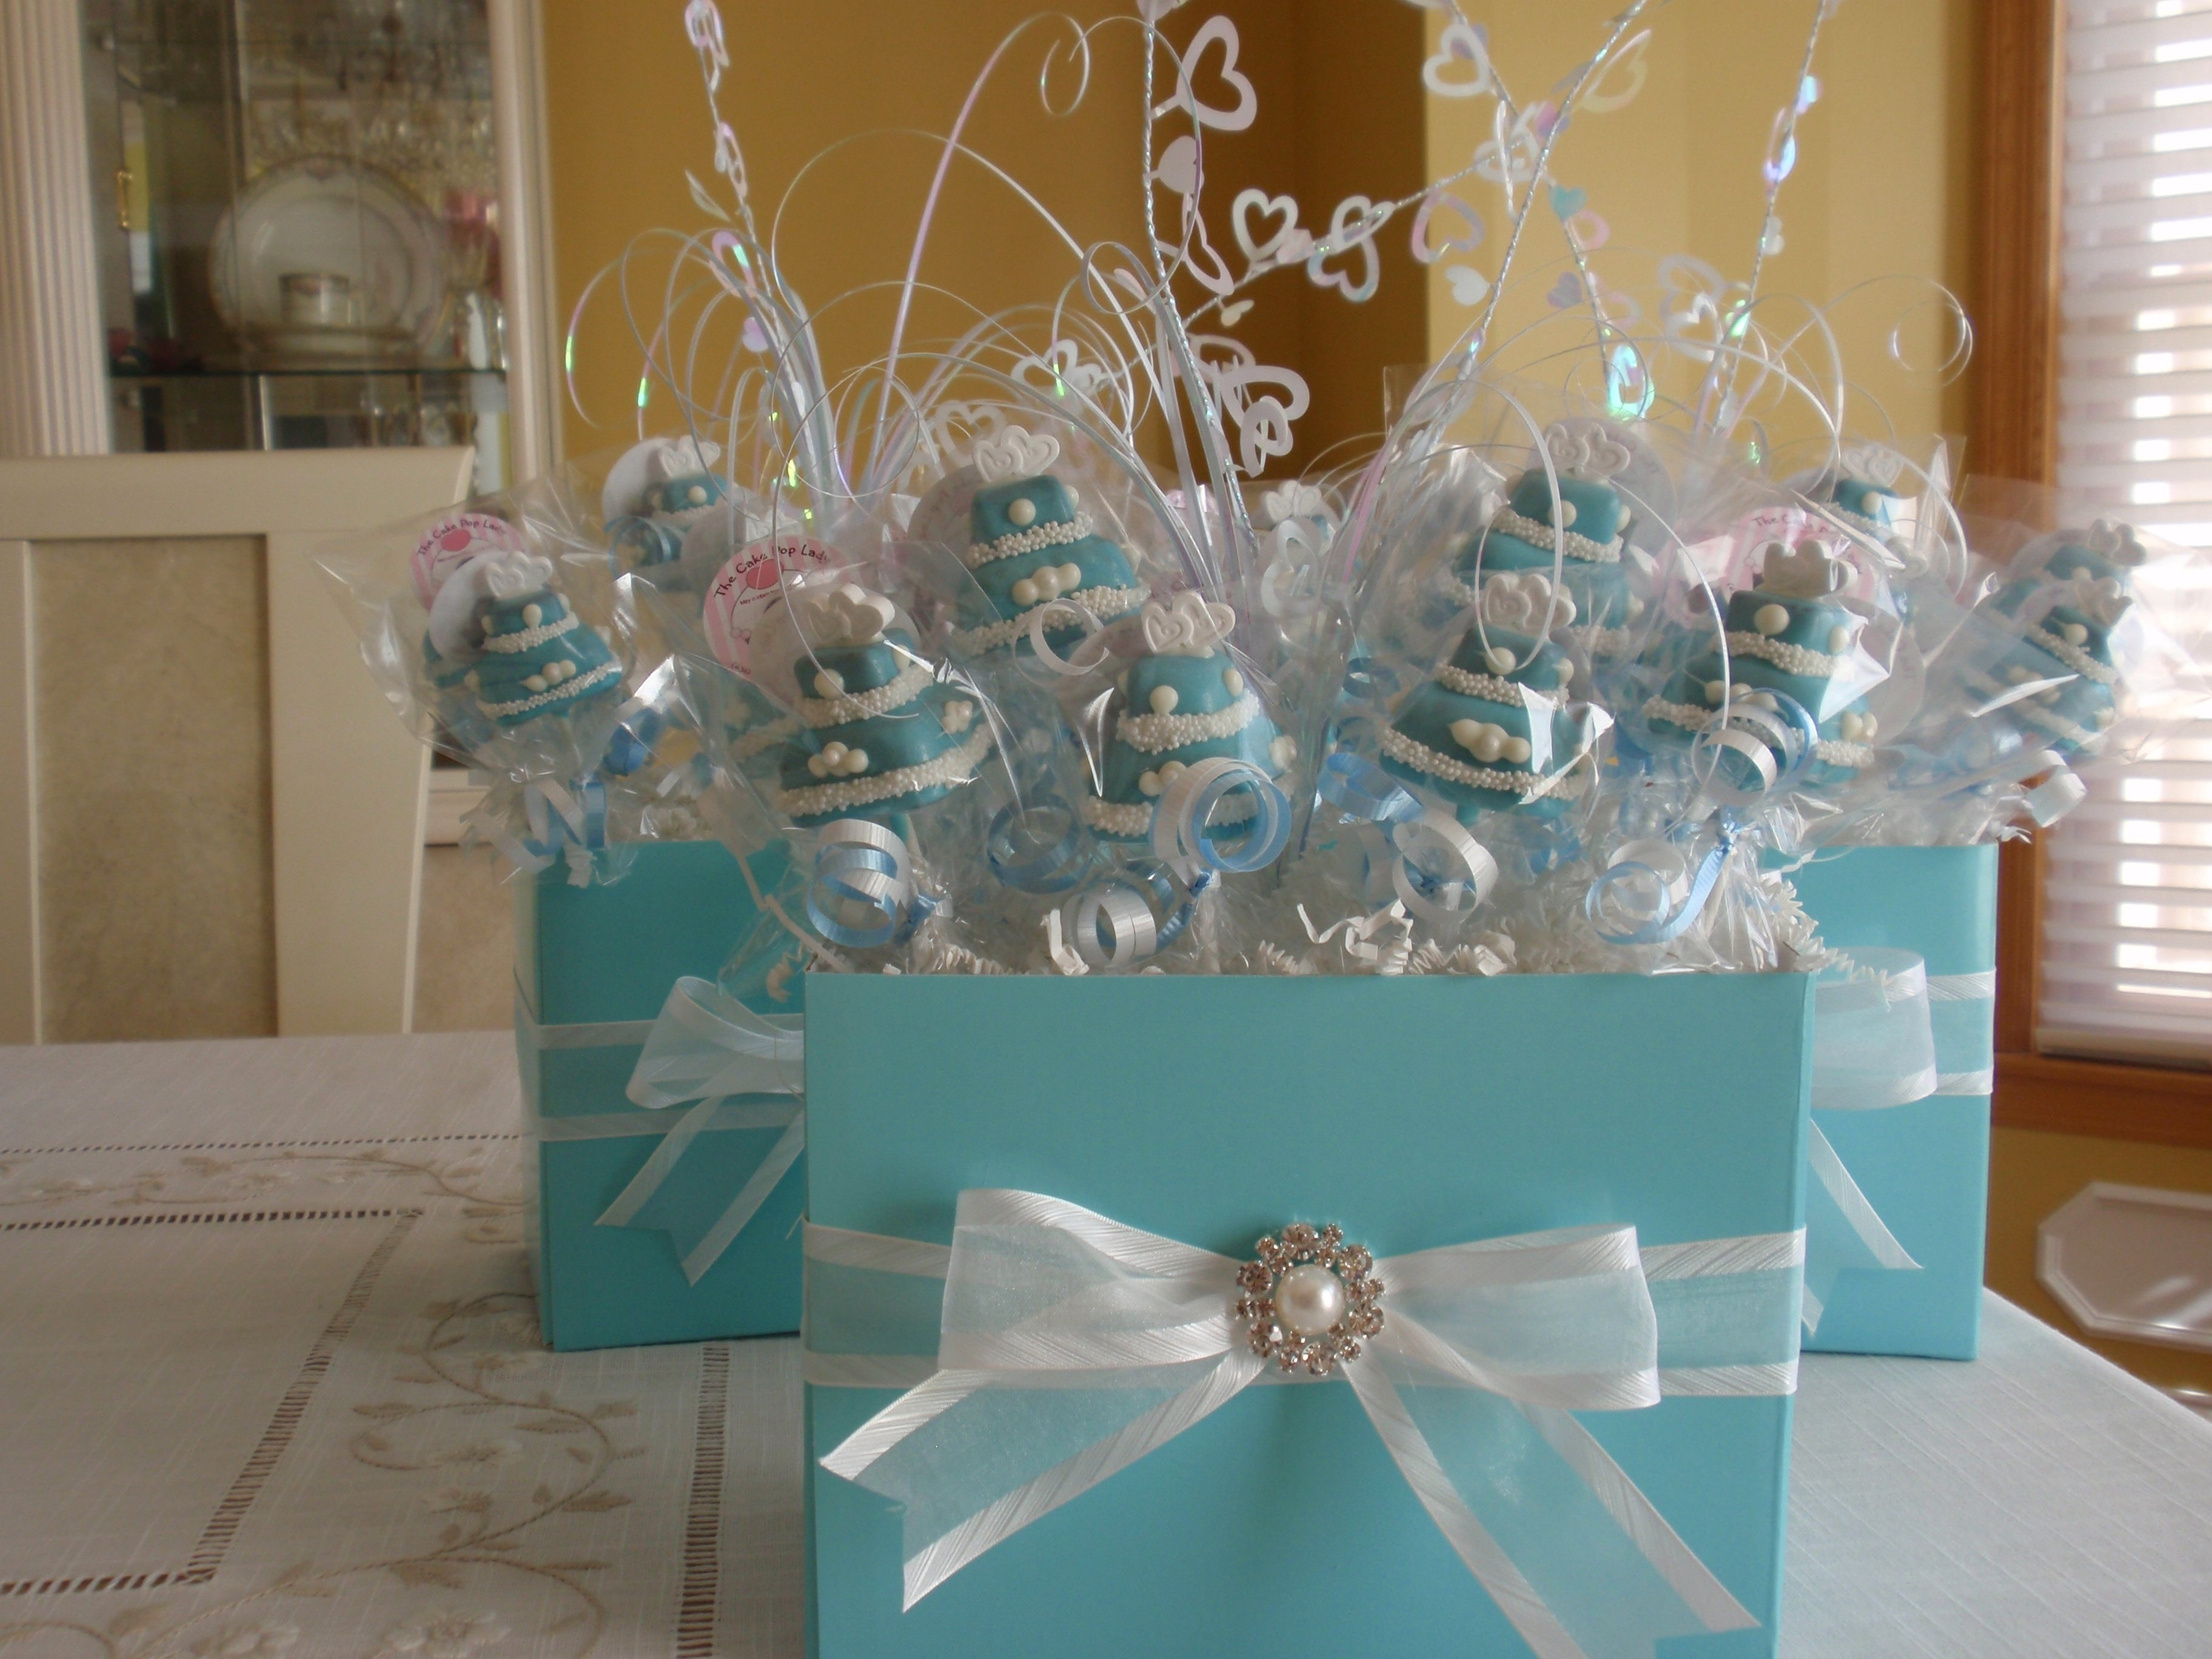 10 Pretty Diy Baby Shower Centerpiece Ideas tiffany ideas on pinterest baby shower centerpieces blue and showers 2020